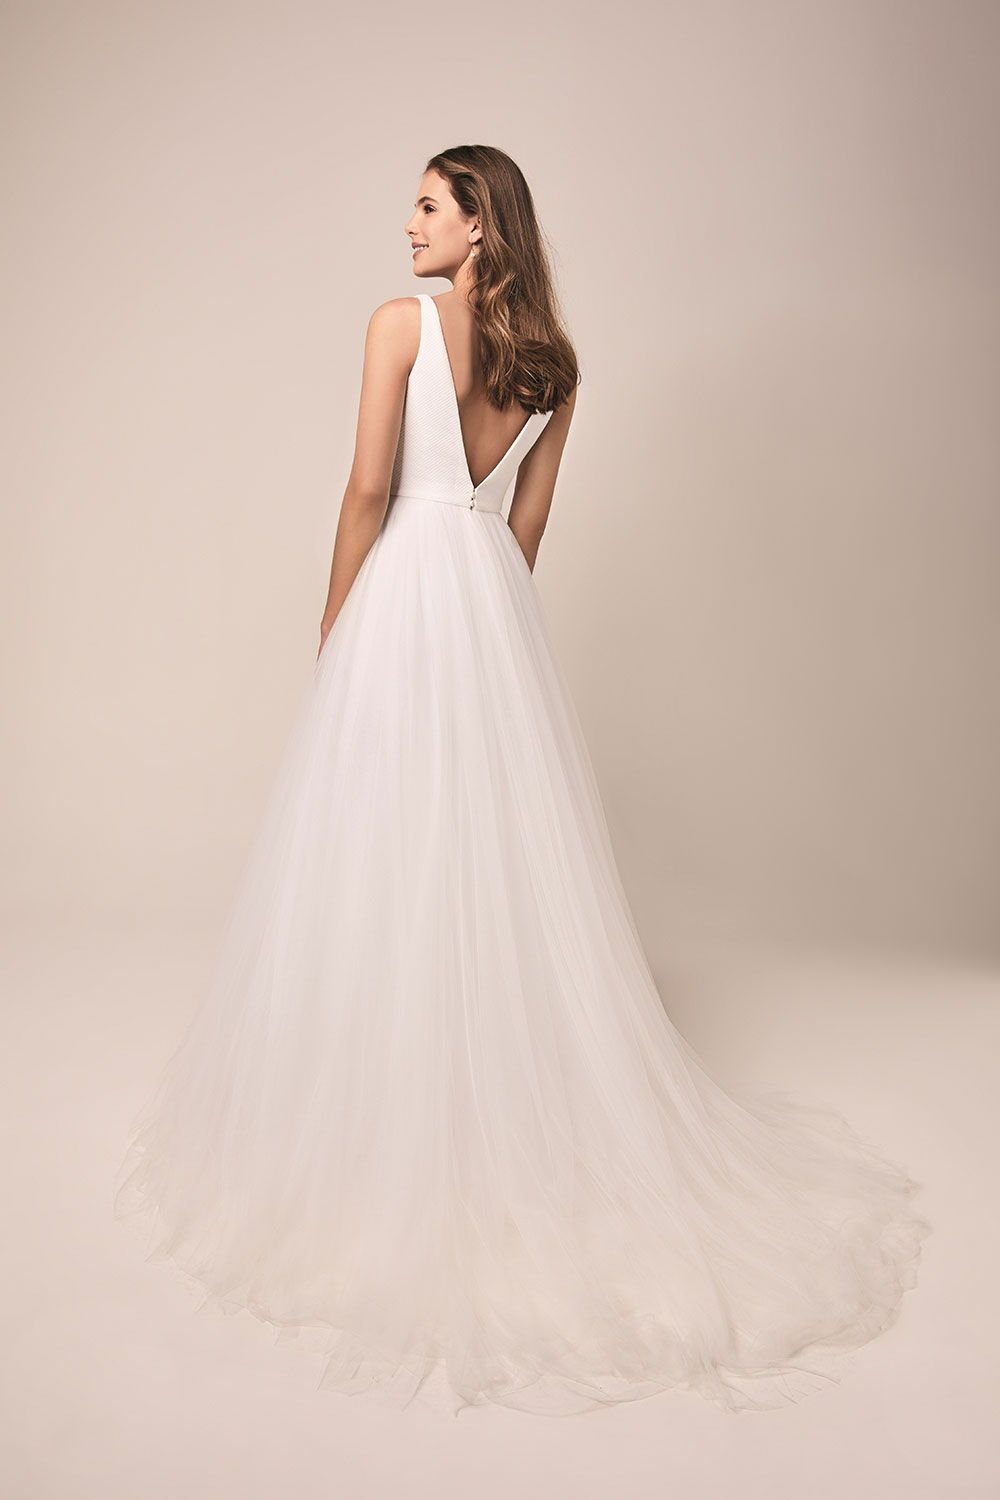 Jesus Peiro 2020 Bridal Collection Preview New Wedding Dresses